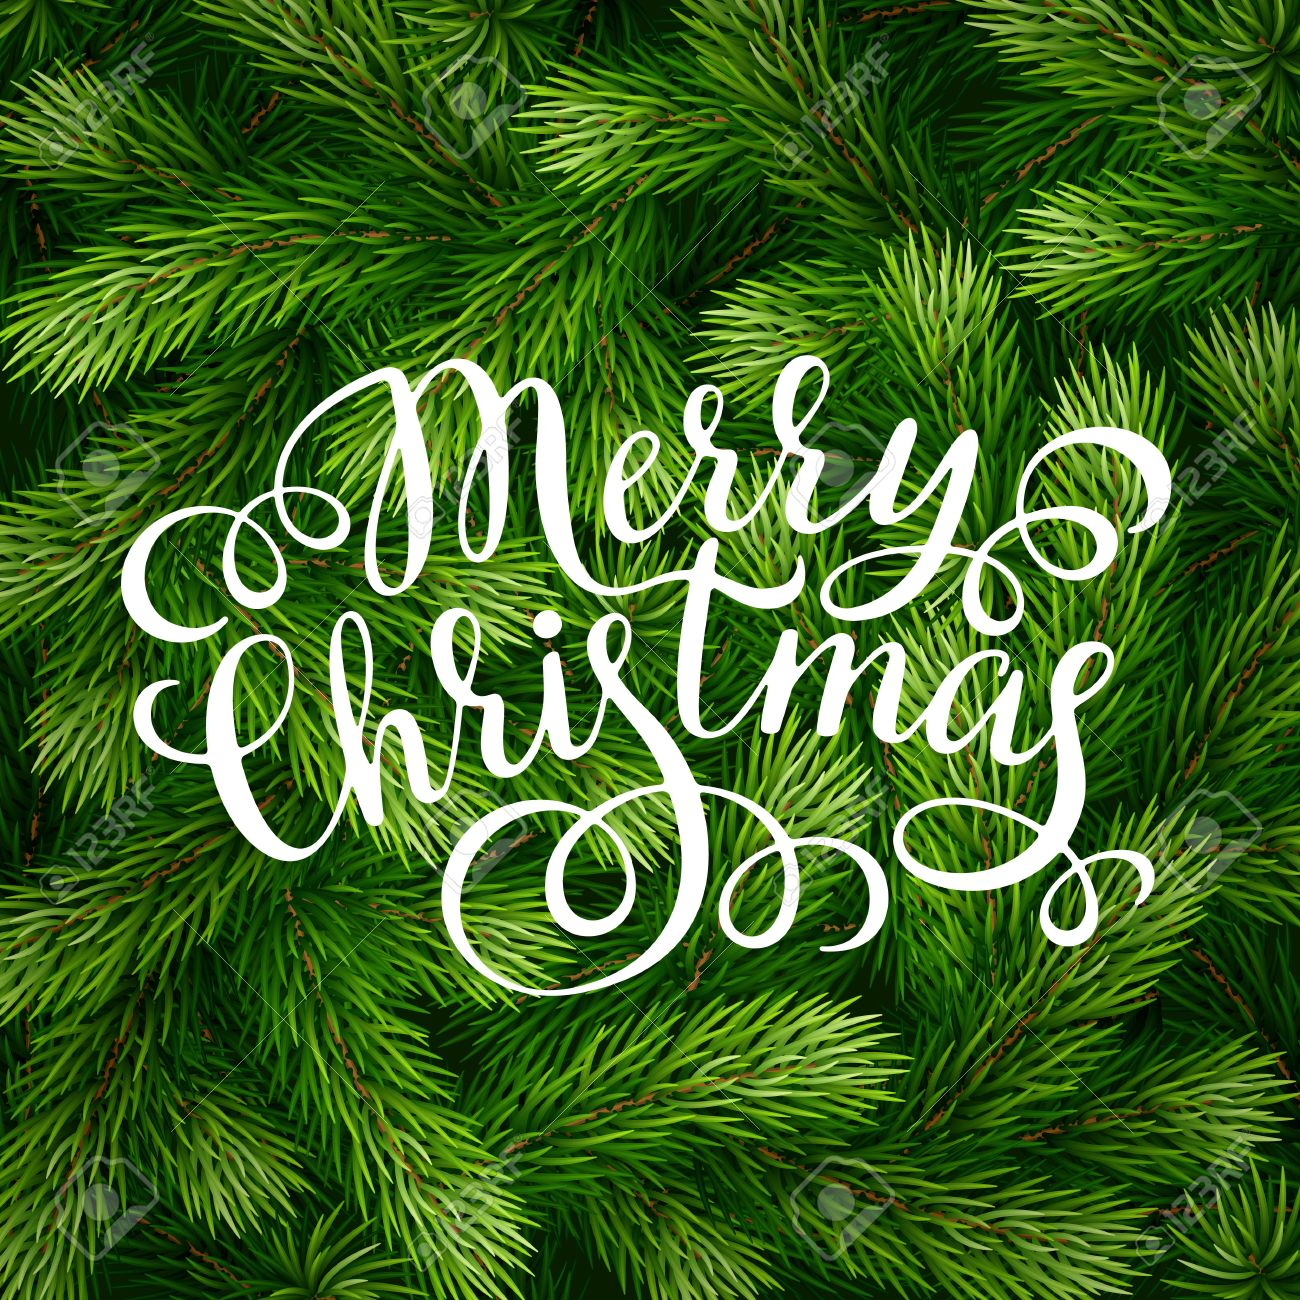 Hand drawing calligraphy phrases on detailed Christmas tree branches background for greeting card, poster, banner, website, header. Vector illustration. - 64772179